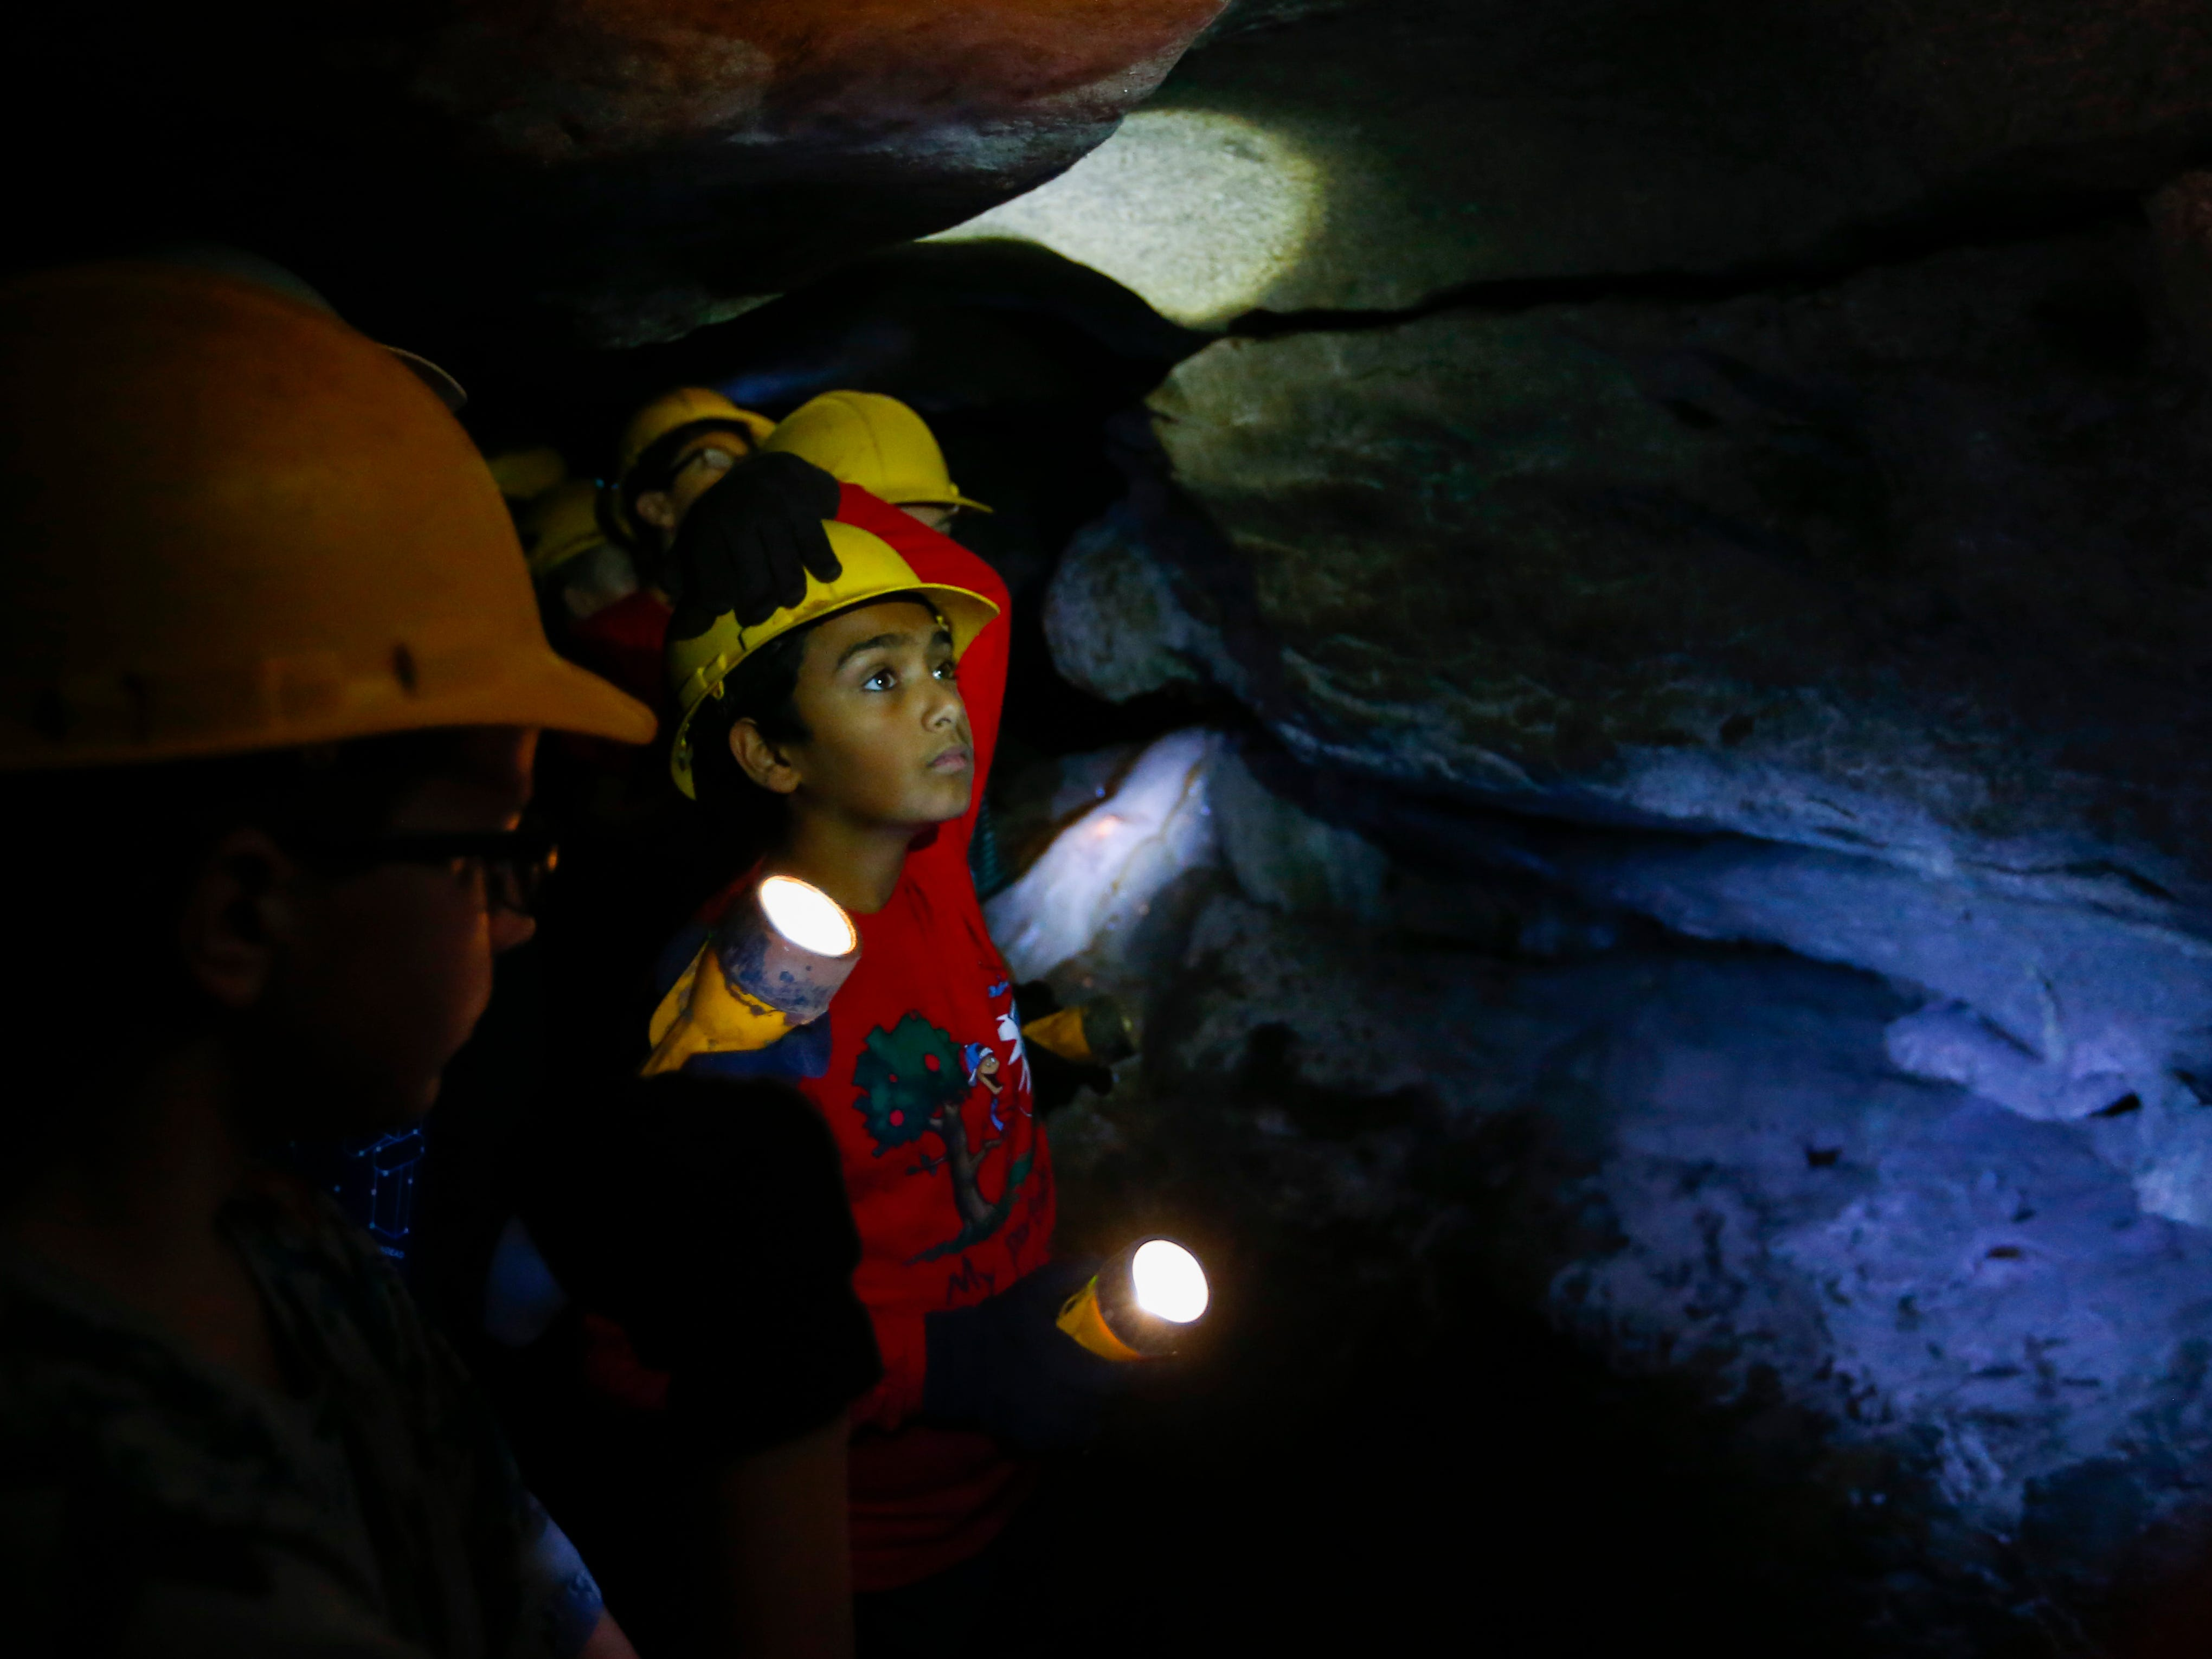 11-year-old Sanjeev Maganti looks at rock formations using a flashlight inside Giboney Cave in Doling Park on Wednesday, July 19, 2017. Middle school students took a tour of the cave during Springfield Public Schools' summer program, Explore.